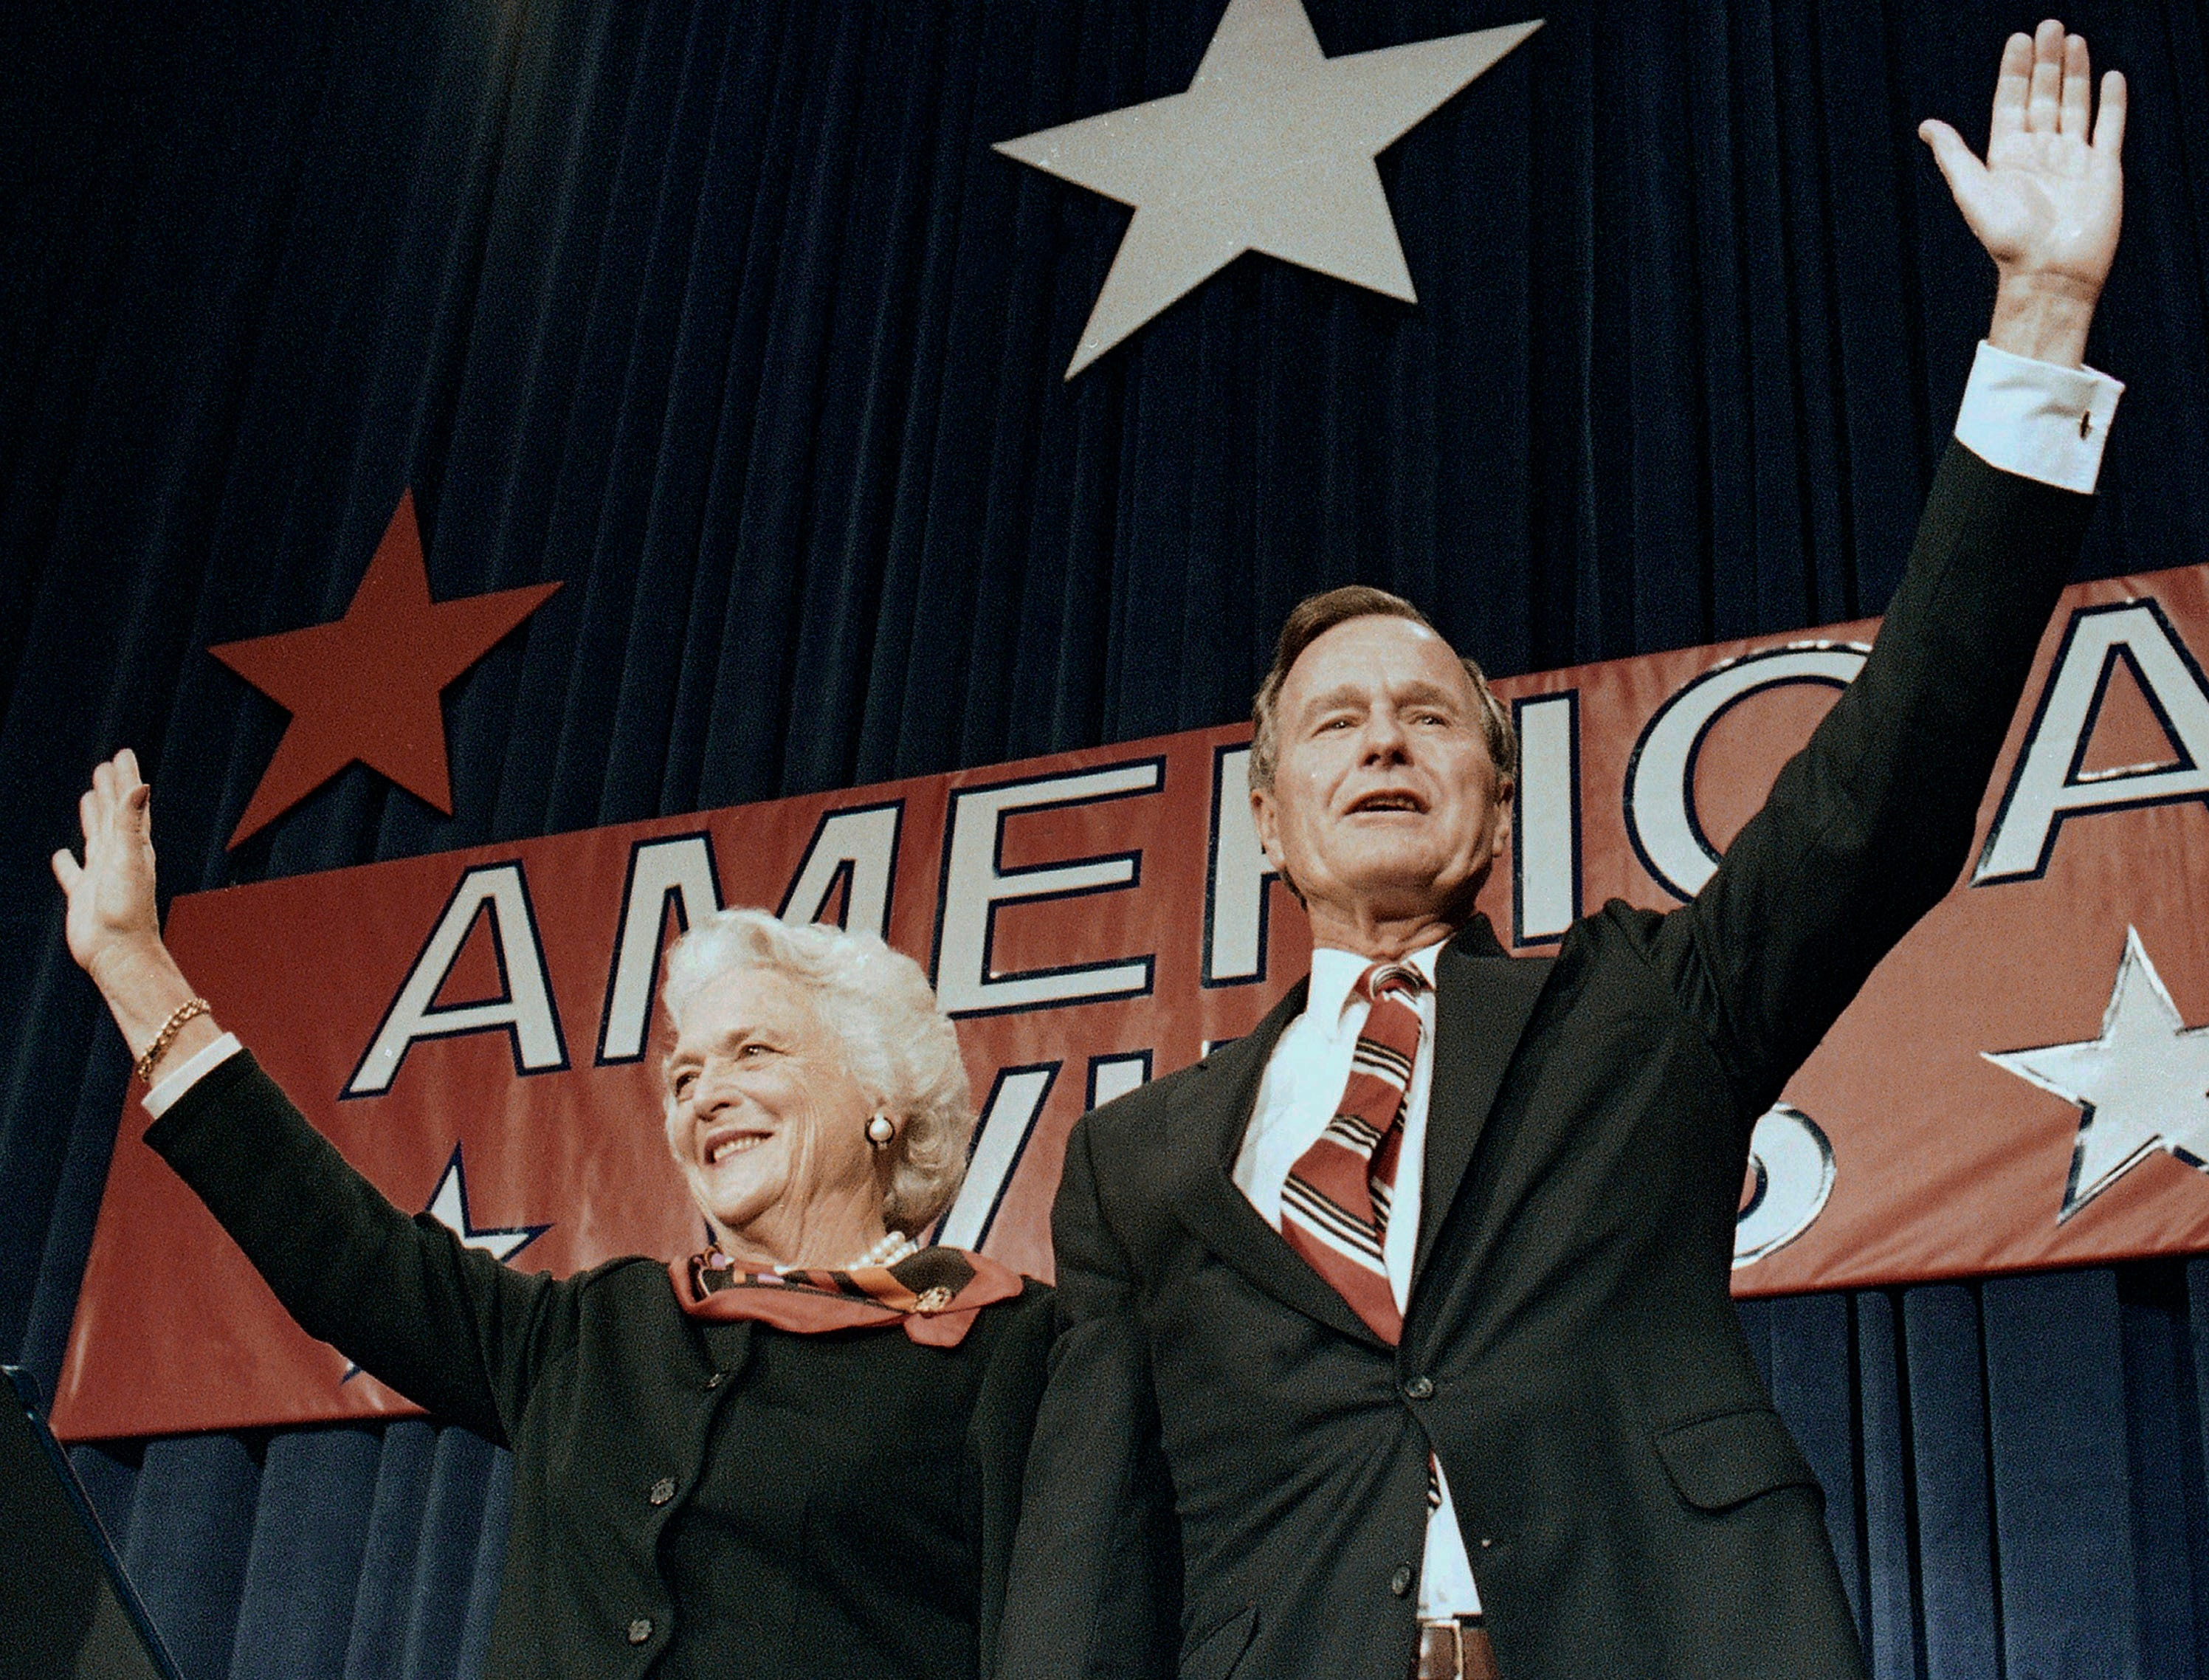 On Nov. 8, 1988, President-elect George H.W. Bush and his wife Barbara wave to supporters in Houston, Texas after winning the presidential election.